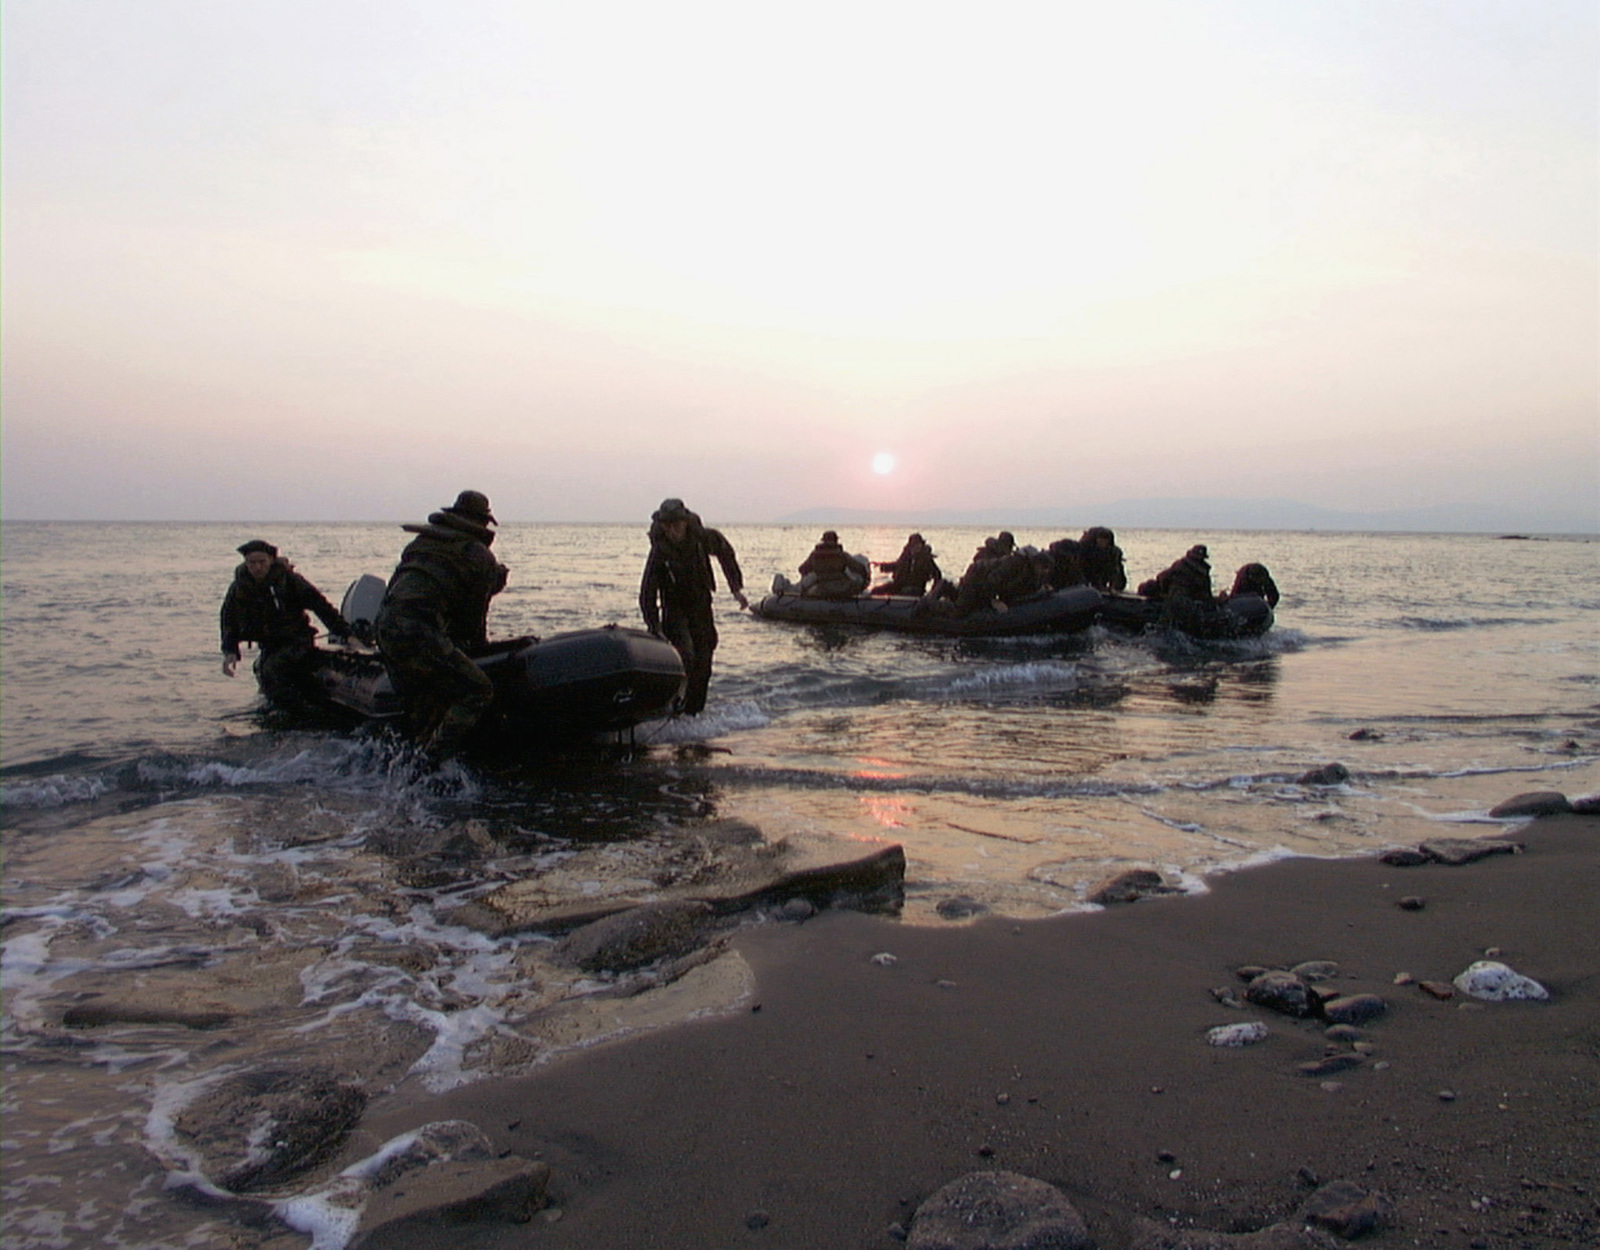 Marines from 1ST Platoon, Lima Company, Battalion Landing Team, 3rd Battalion, 8th Marine Regiment, silently approach the beach in the twilight at dusk.Marines from the 26th Marine Expeditionary Unit (Special Operations Capable) (MEU(SOC)), embarked aboard the USS PONCE (LPD-15), are participating in the NATO exercise, NORTHERN APPROACH, with British and Turkish forces